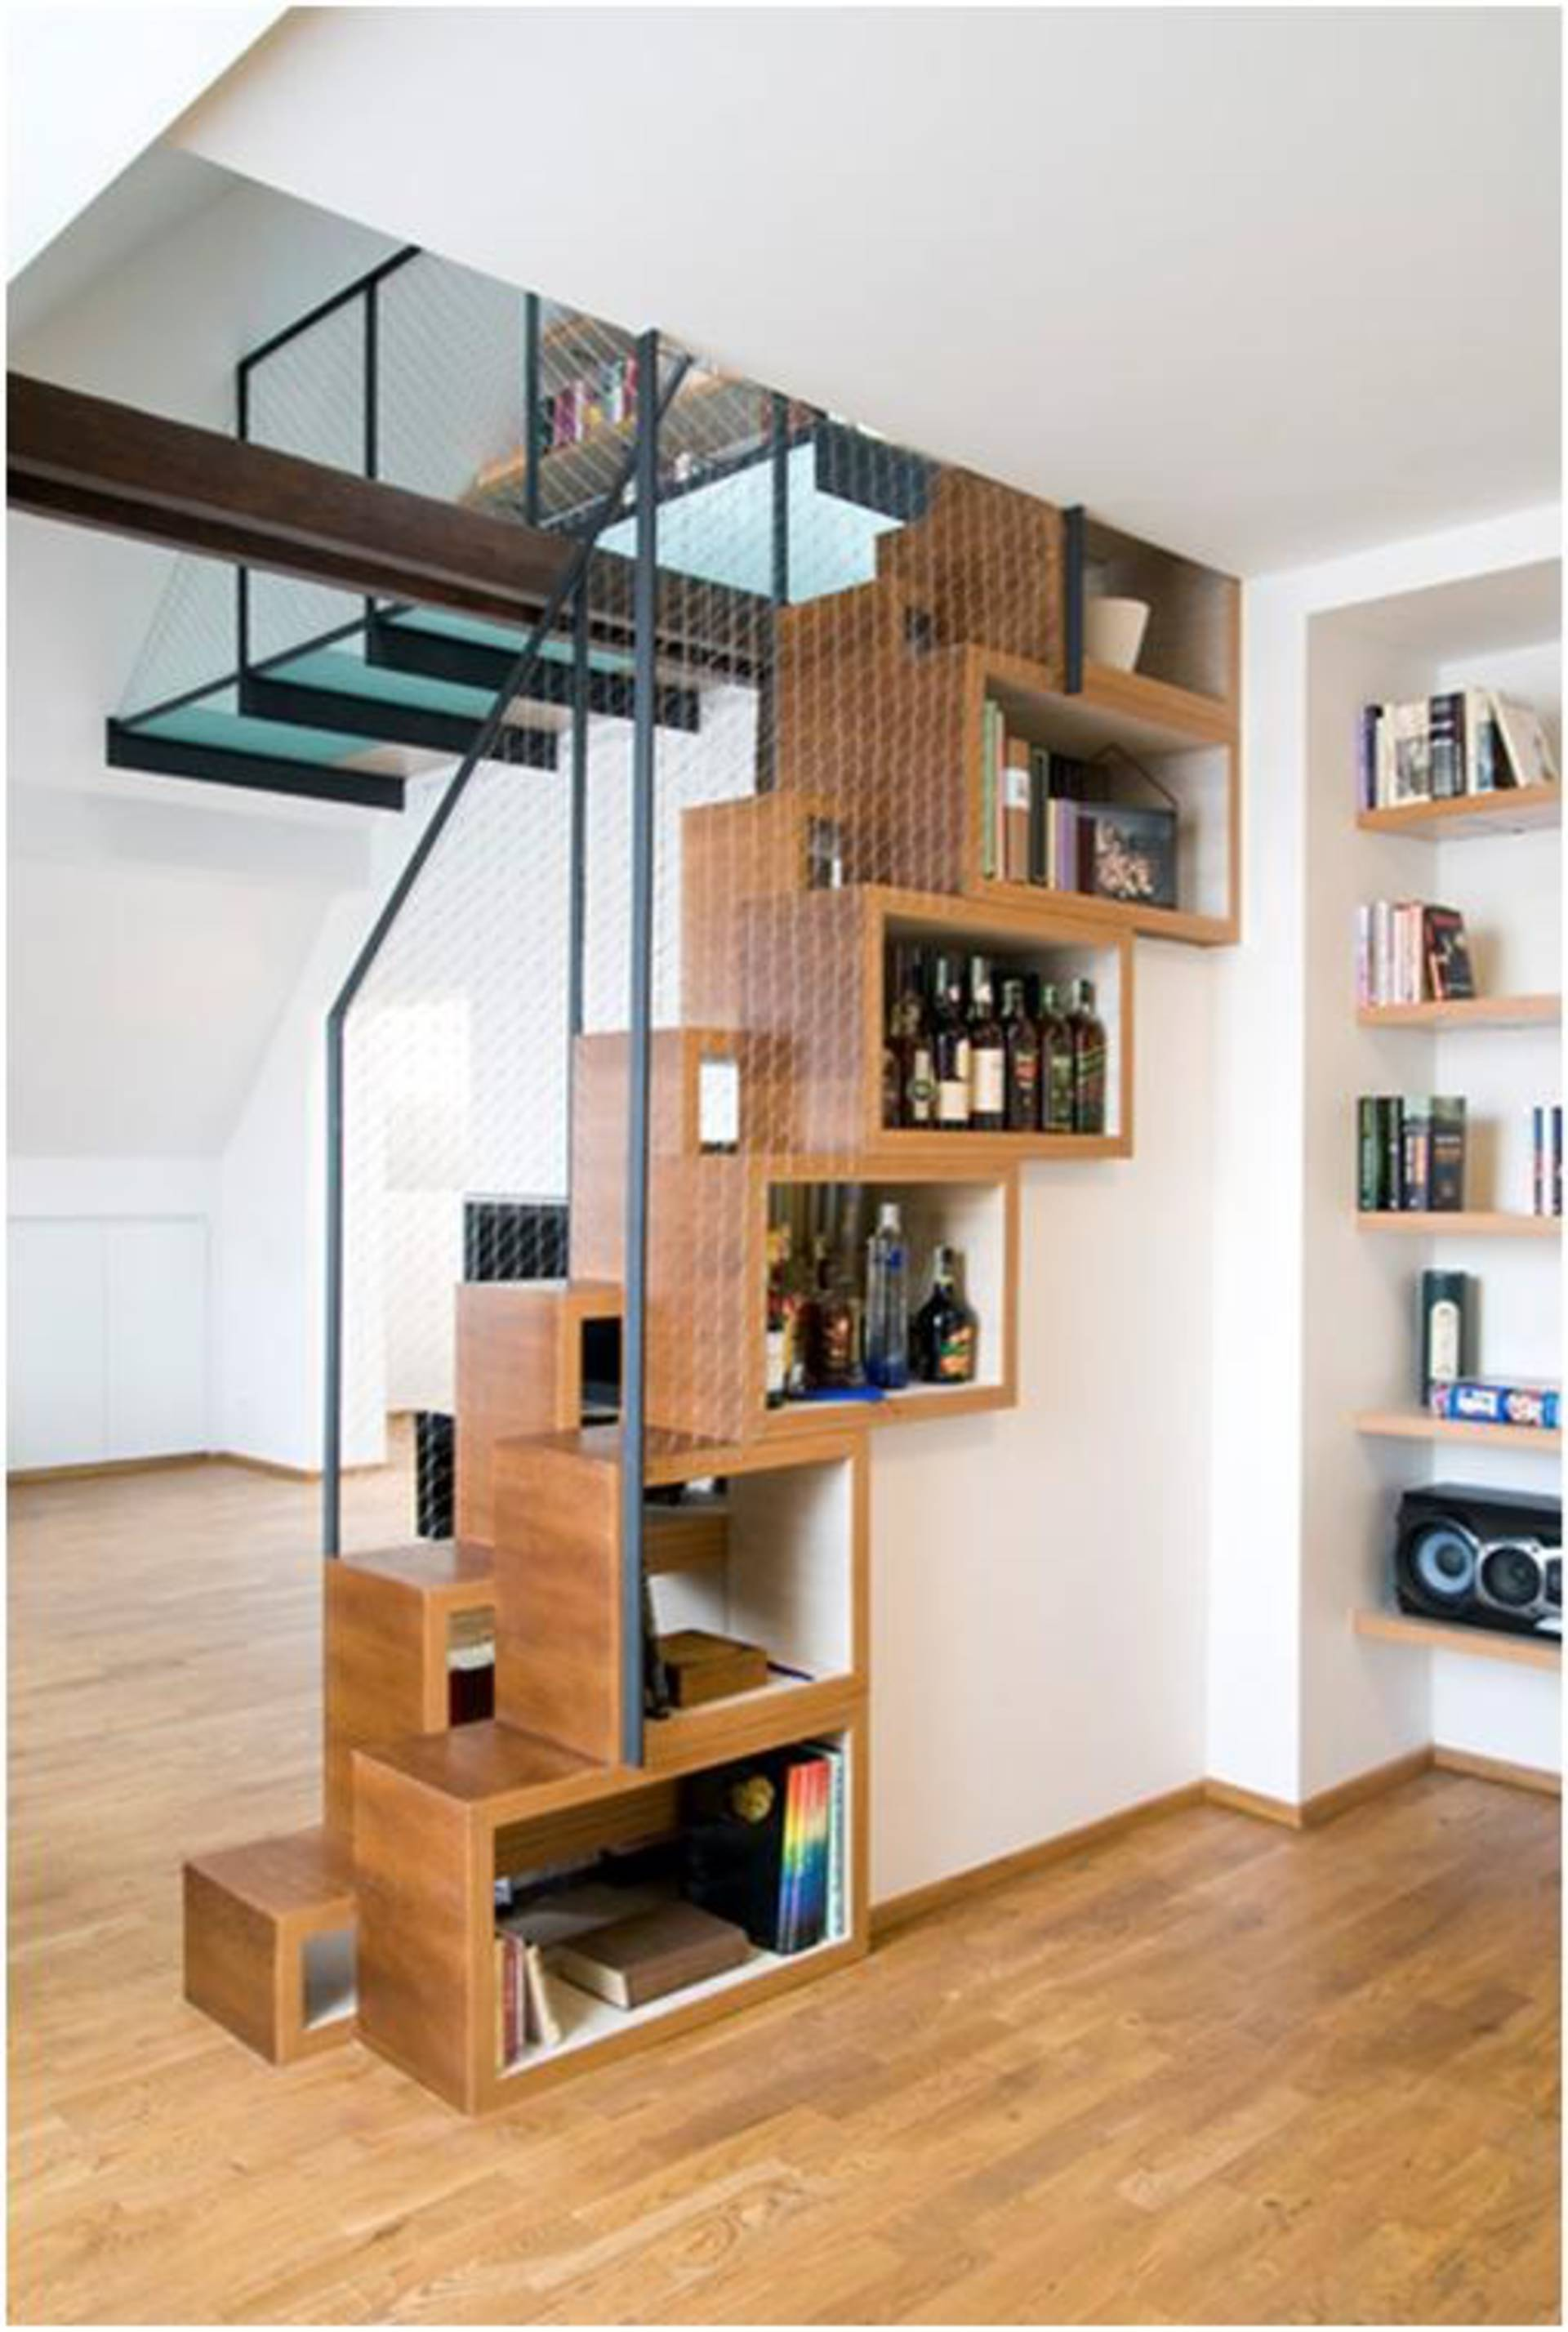 Compact bookshelves built into the staircase home reviews compact bookshelves built into the staircase amipublicfo Images